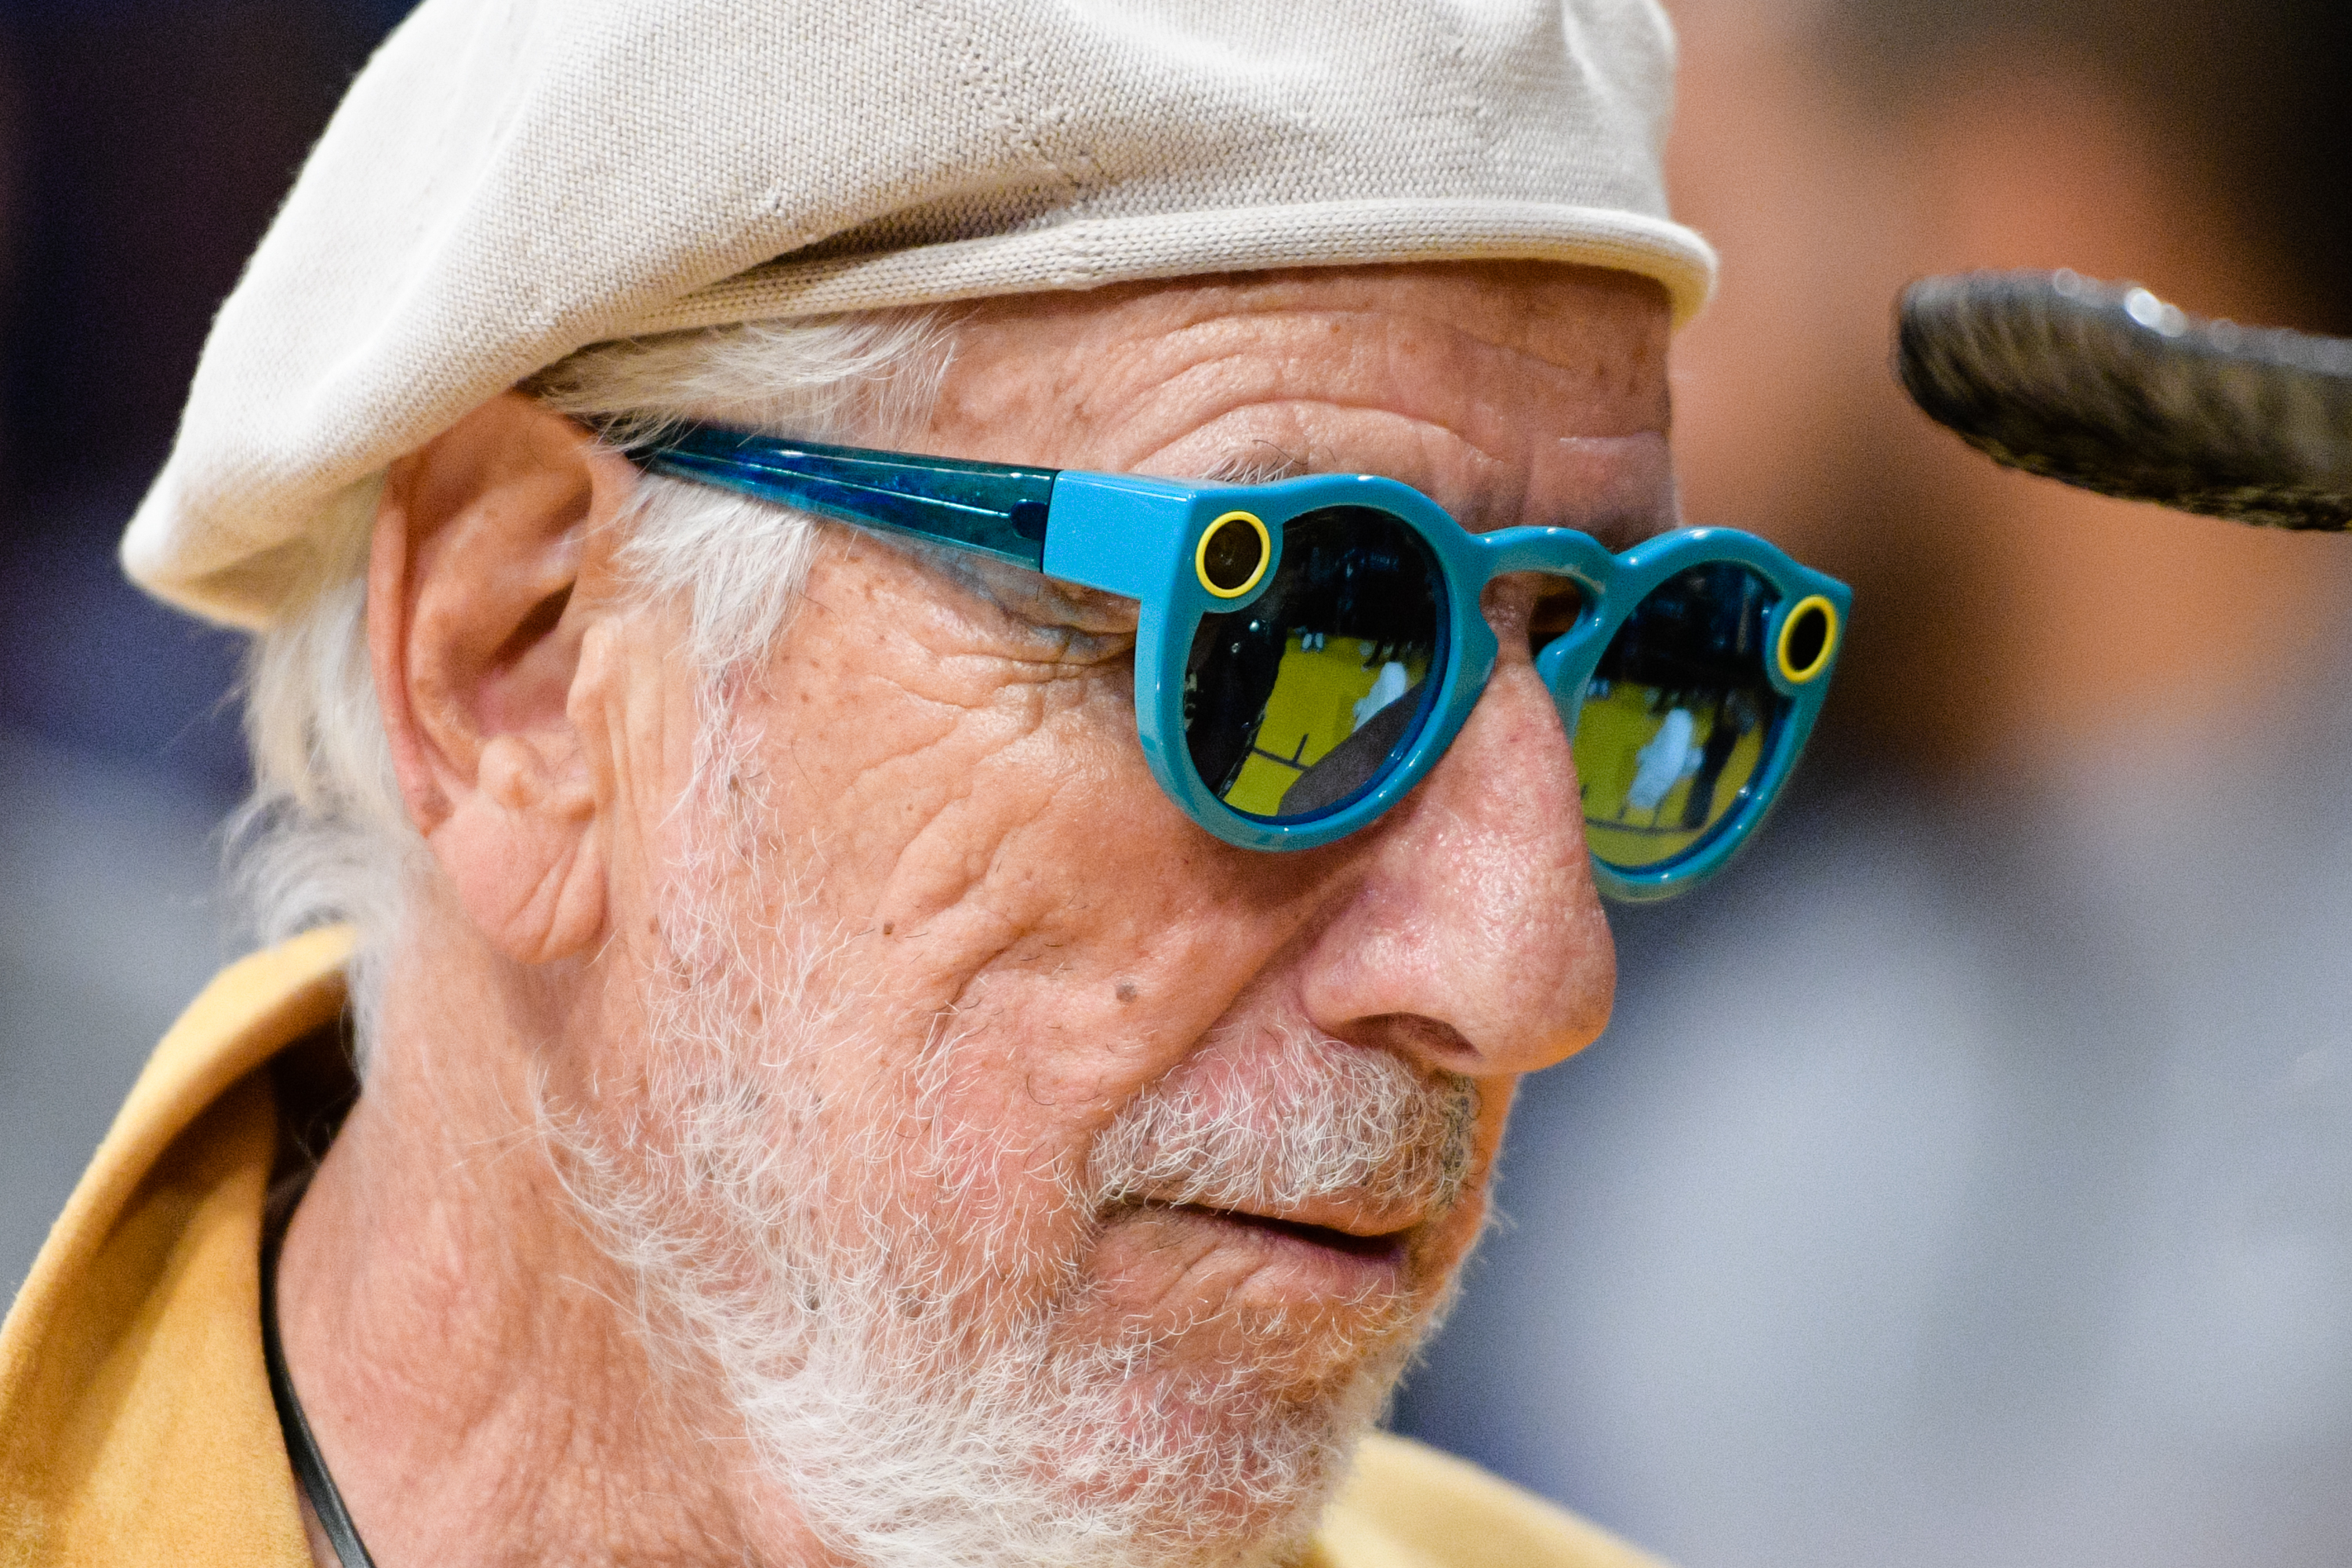 Lou Adler, wearing Snapchat's Spectacles, attends a basketball game between the Brooklyn Nets and the Los Angeles Lakers at Staples Center on November 15, 2016 in Los Angeles, California.